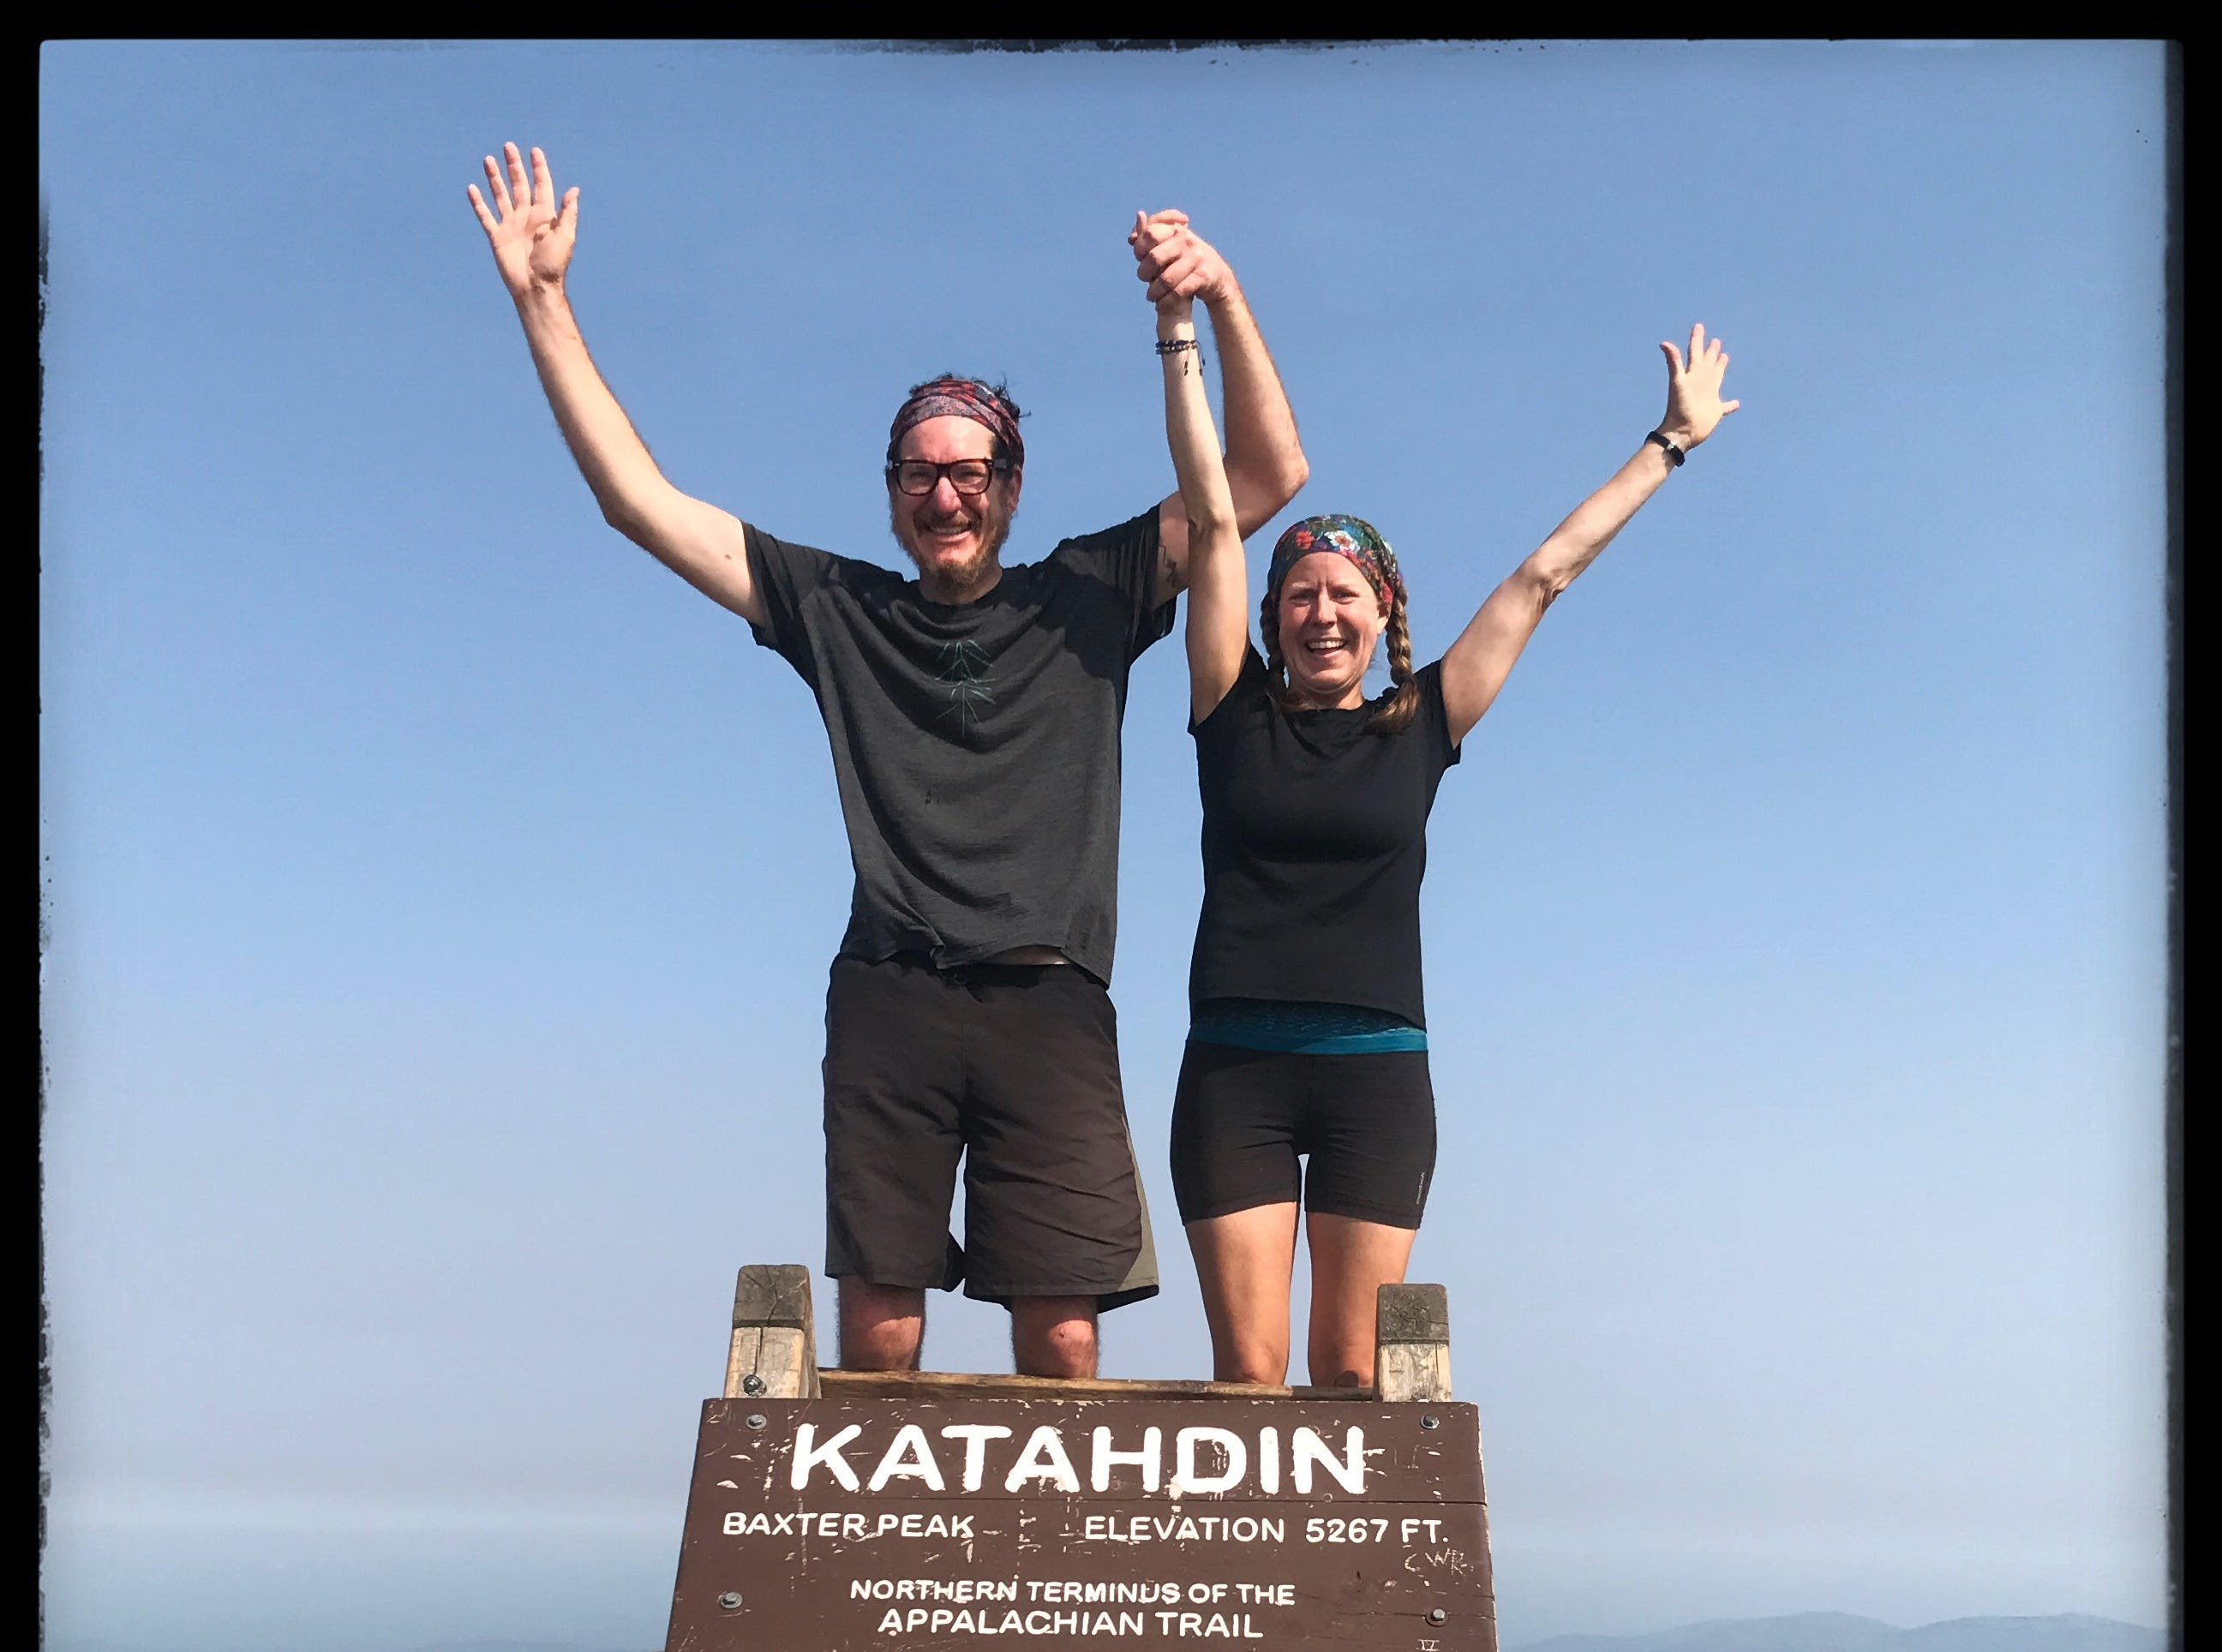 Greg and Jen's epic Appalachian Trail adventure came to an end on top of Mount Katahdin in Maine after 179 days on the trail, on Sept. 16, 2017